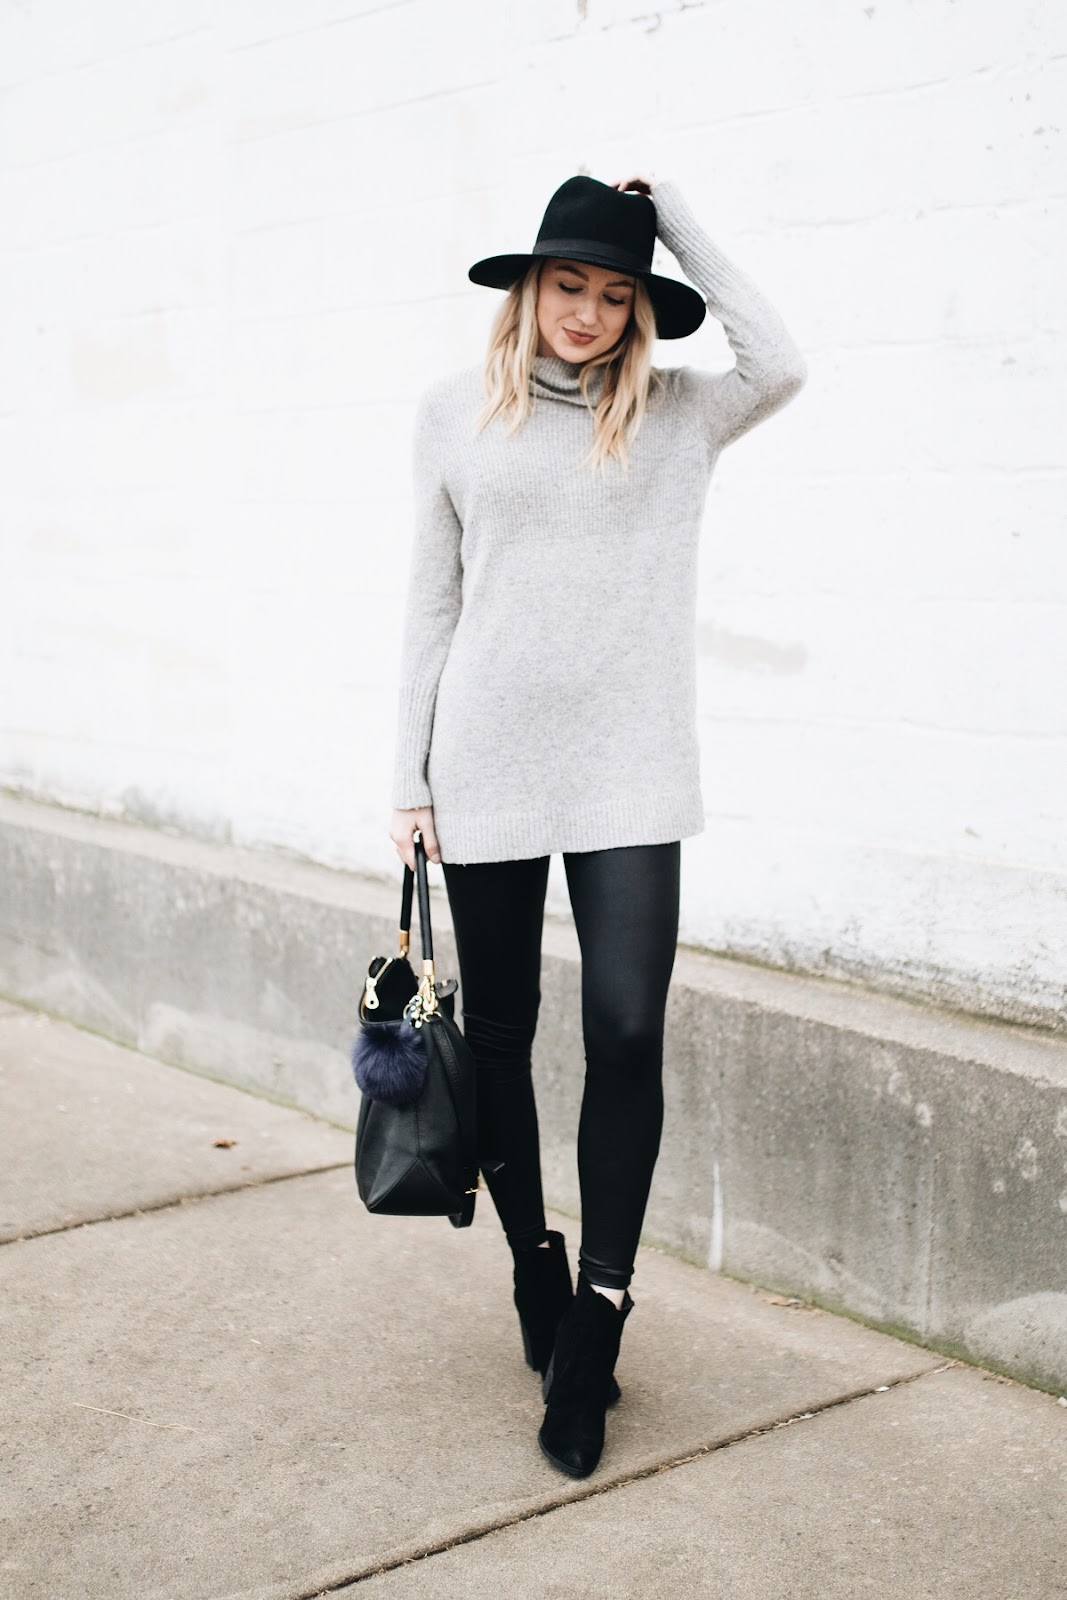 Turtleneck sweater + leather leggings // easy winter outfit idea